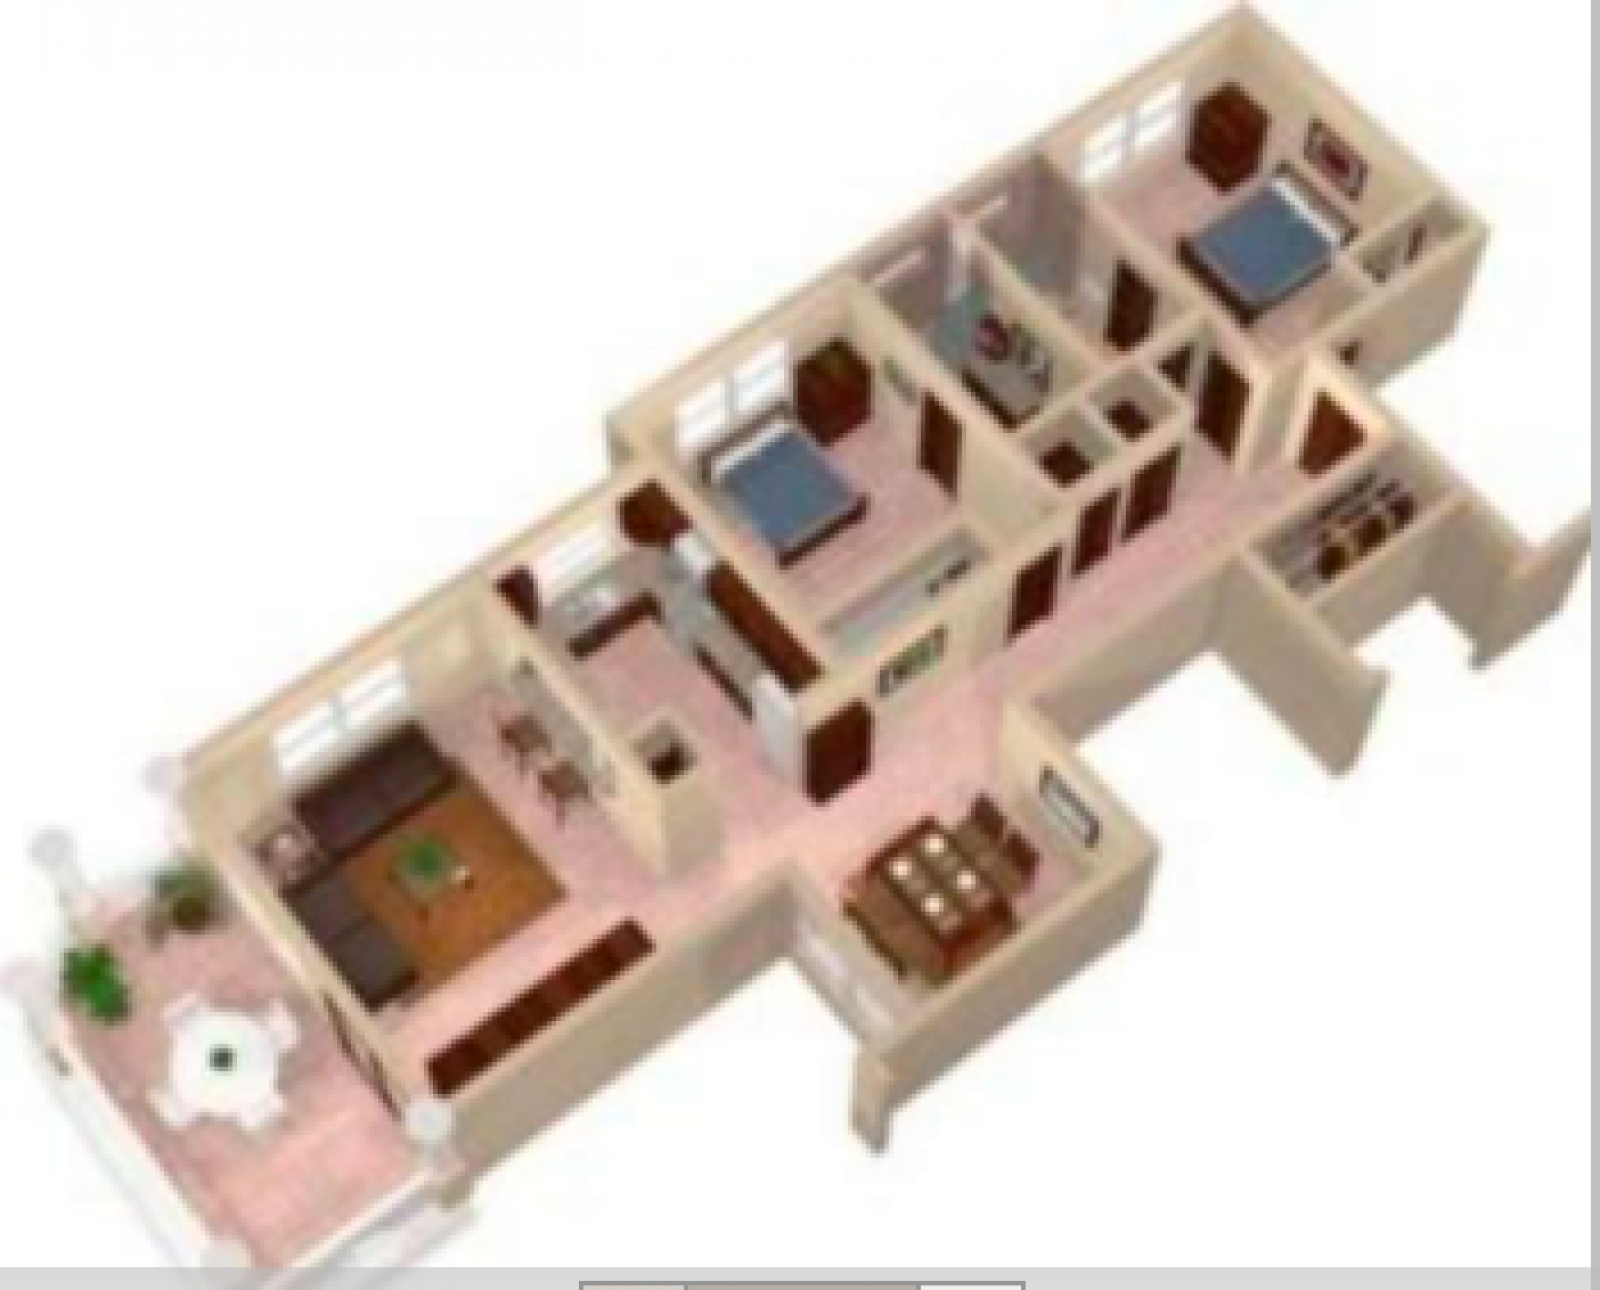 An architectural rendition of the unit's floor plan.